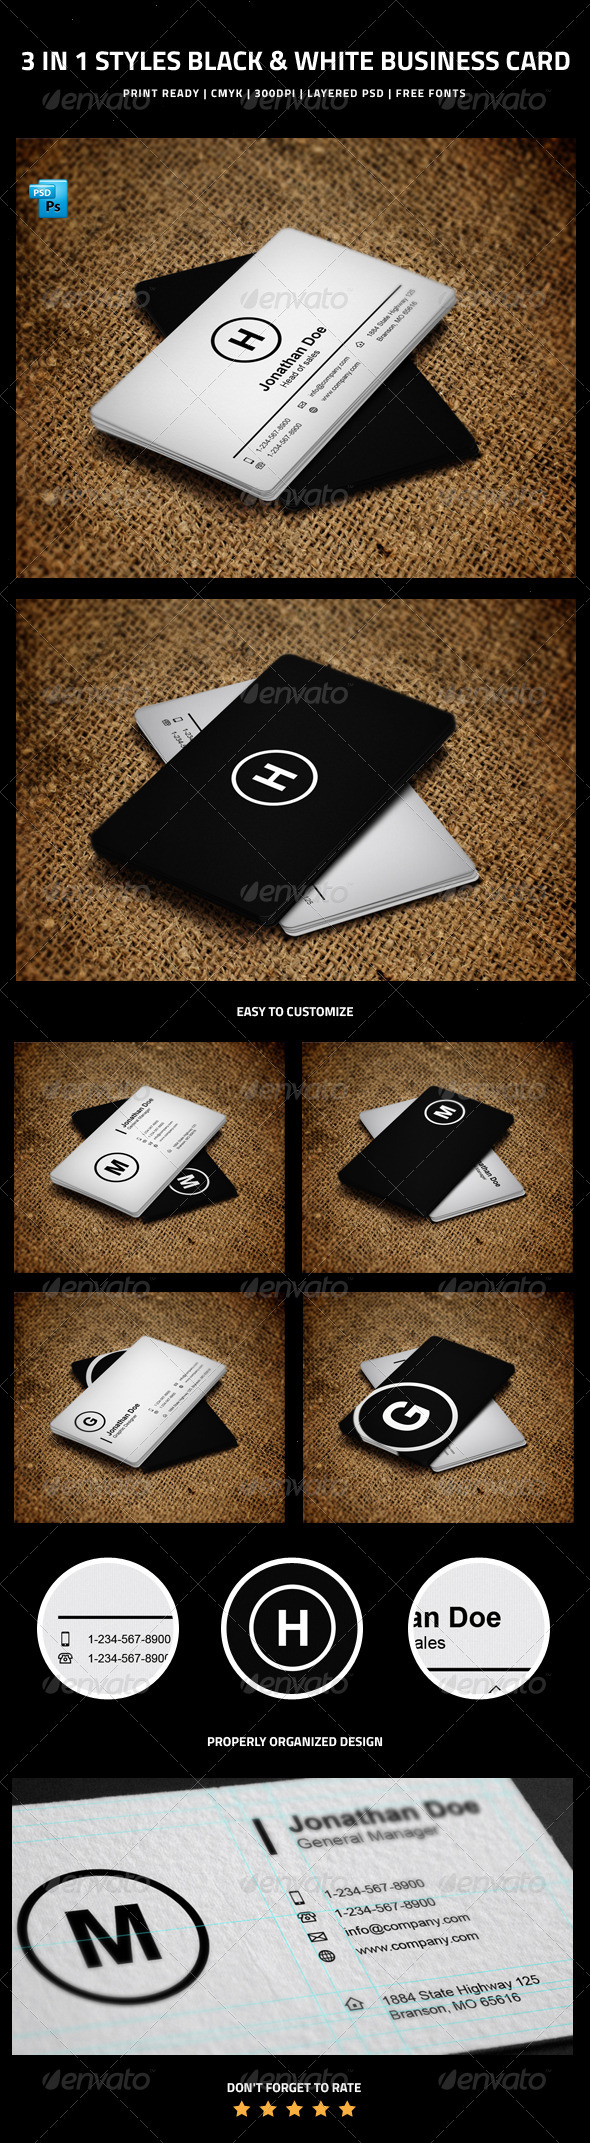 GraphicRiver 3 in 1 Styles Black & White Business Card 6256160